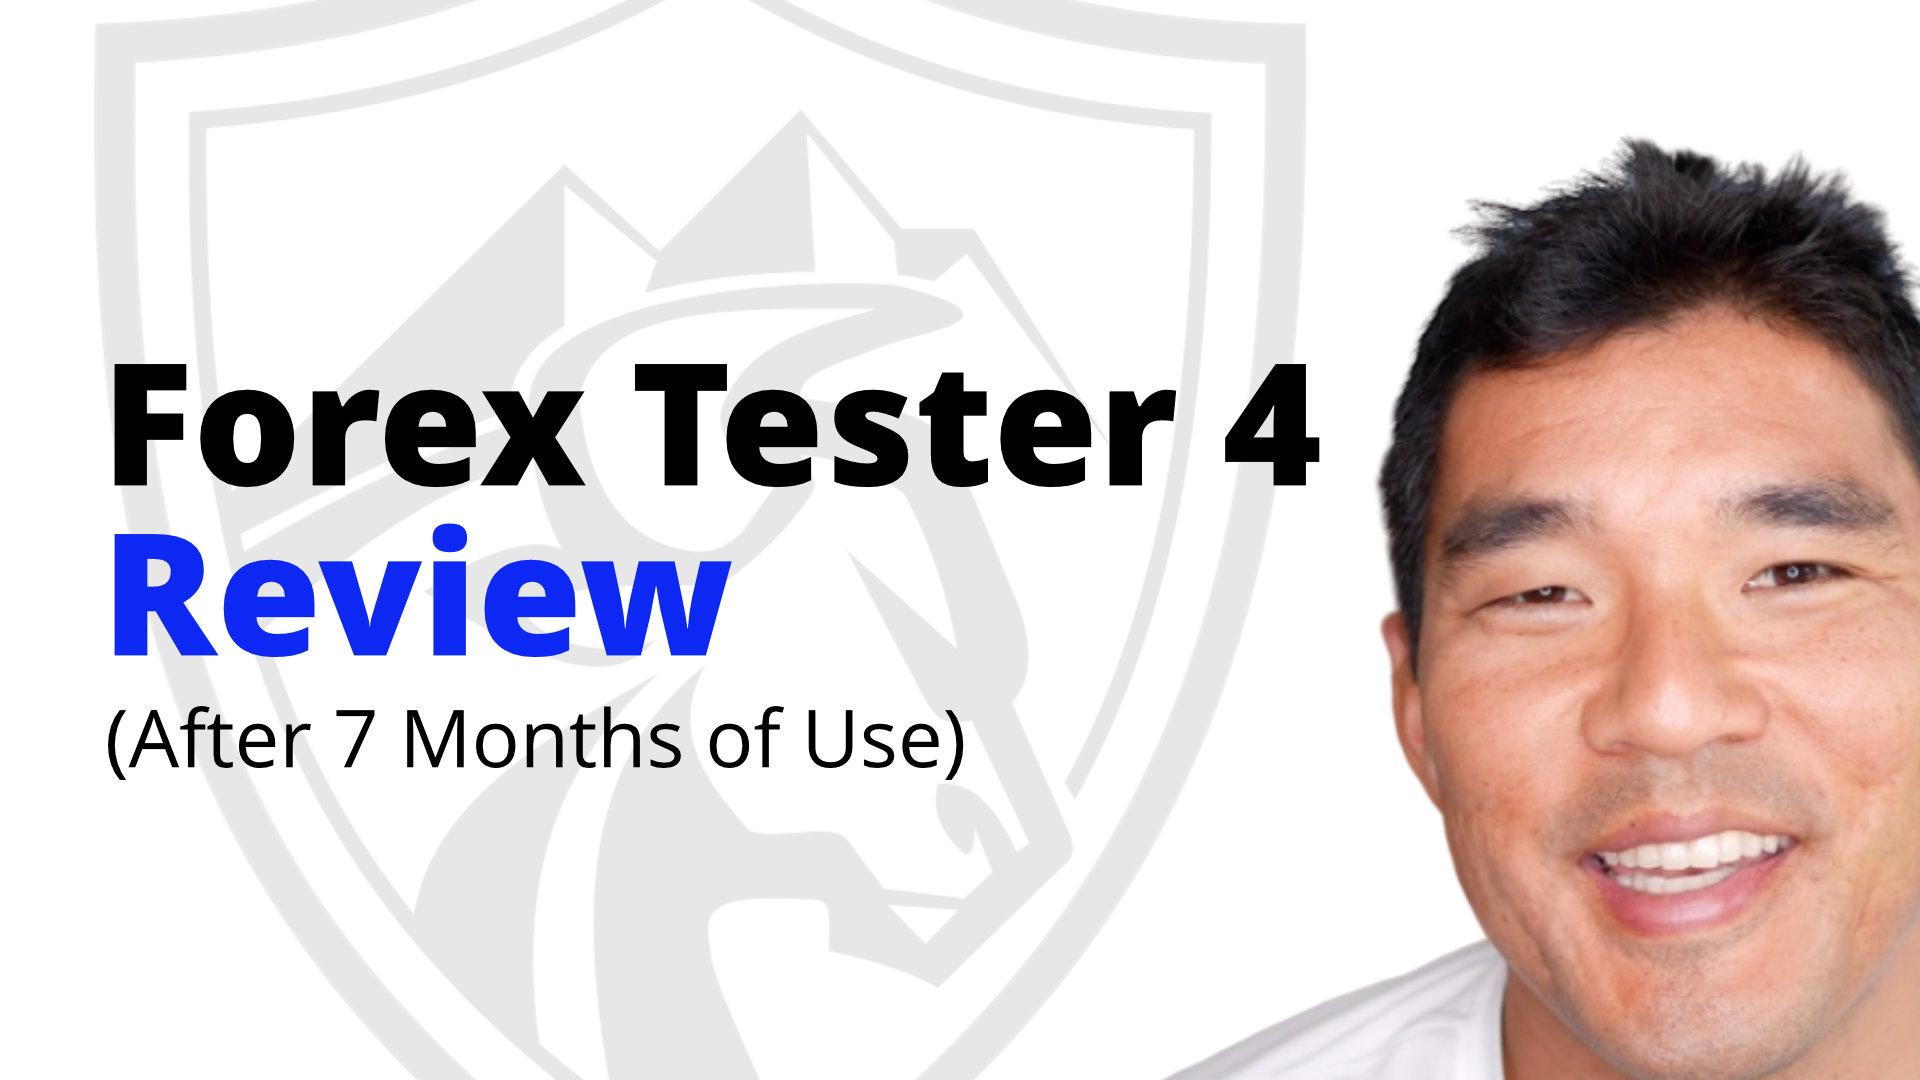 Forex Tester 4 Review